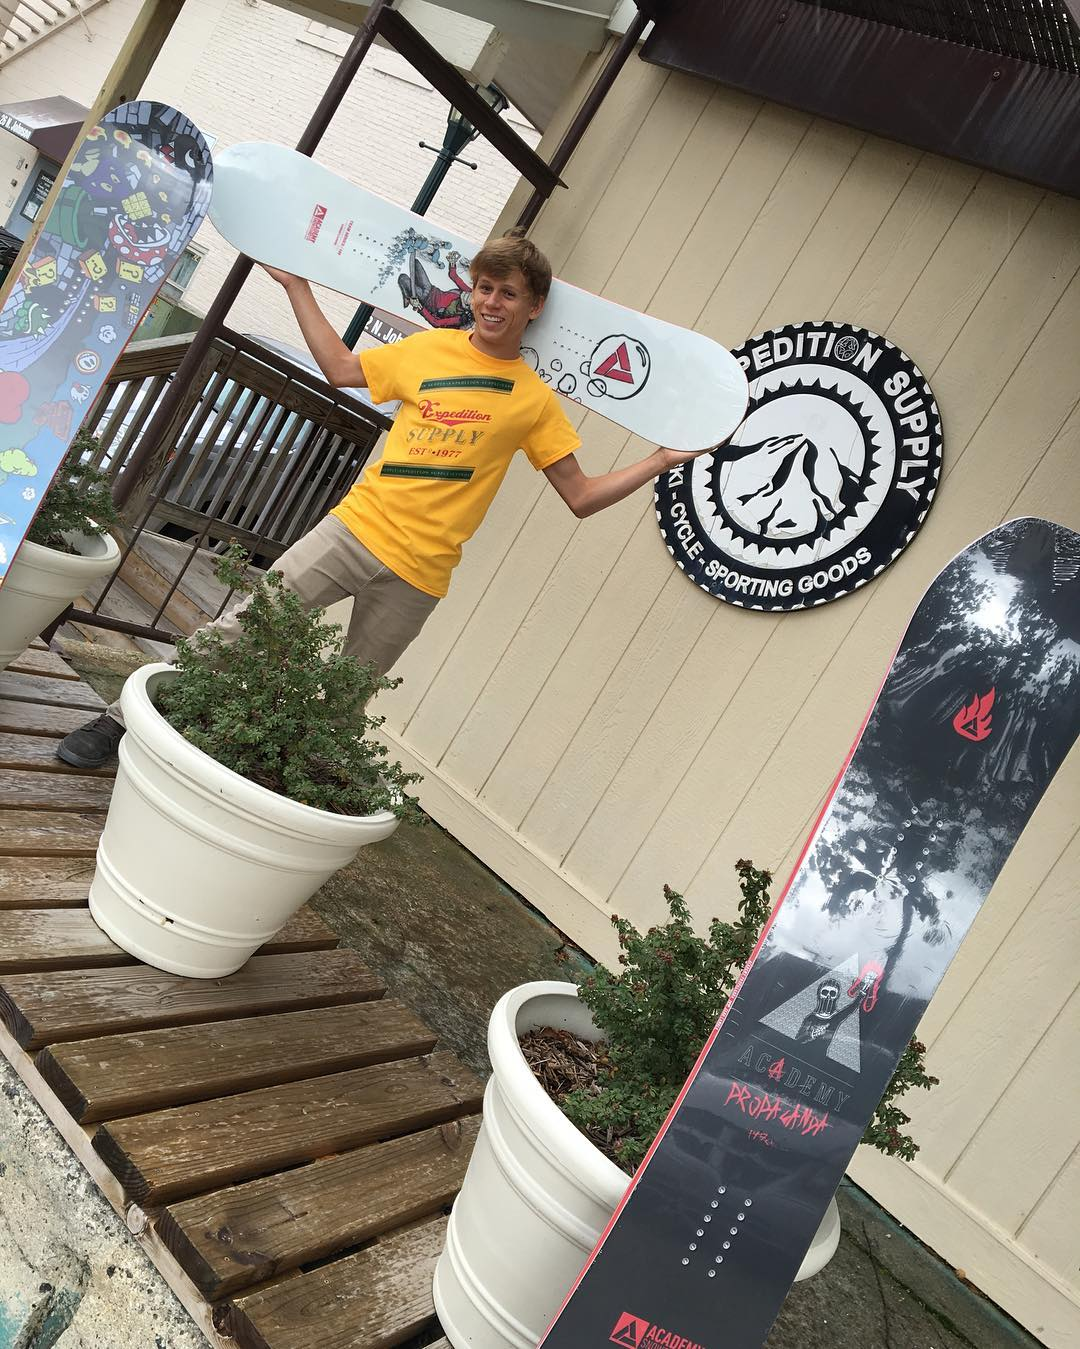 Derek Jackson at Expedition supply stoked on the new boards. Did you get yours yet? @expeditionsupply @derek527